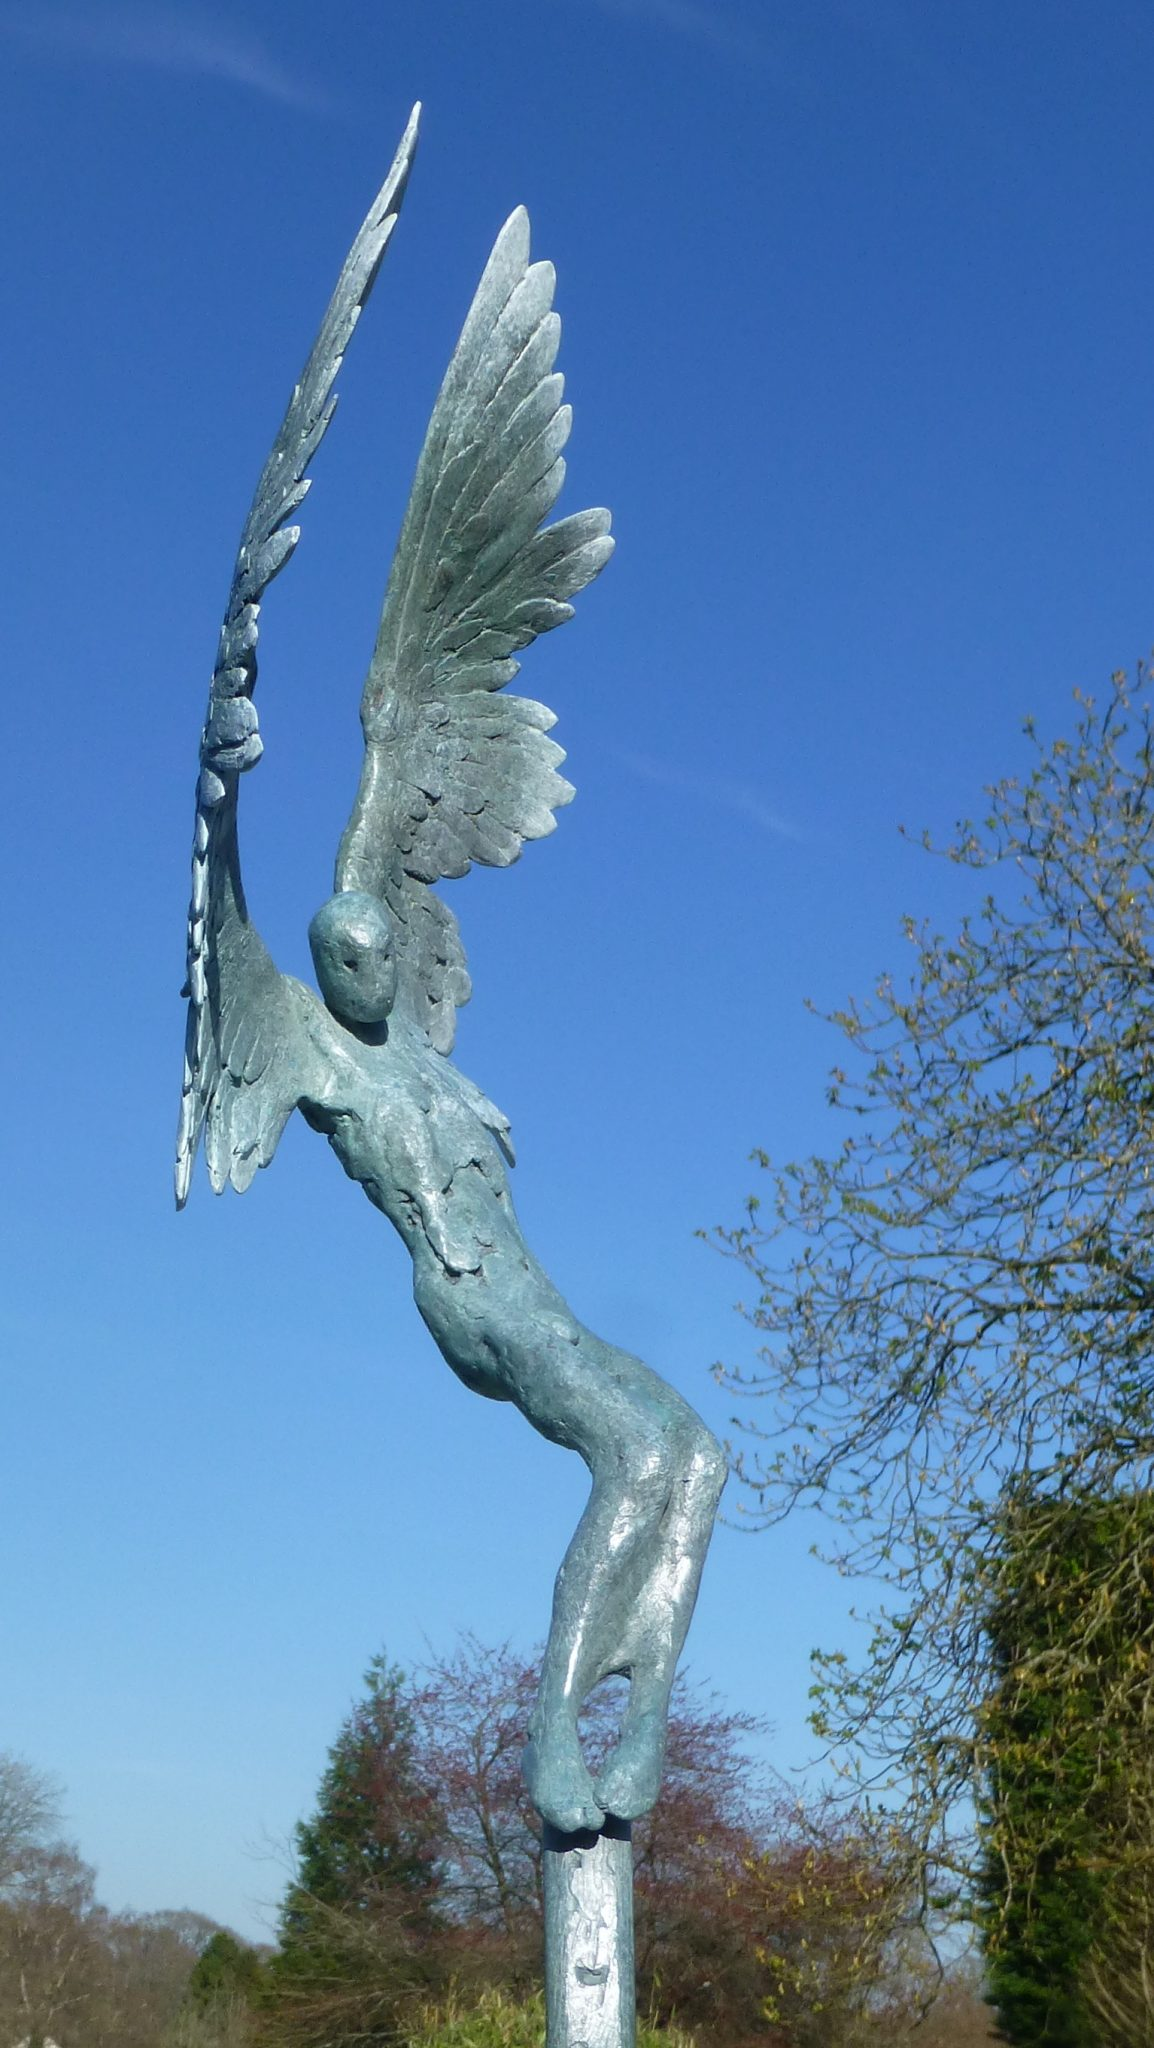 Icarus IV small bronze sculpture